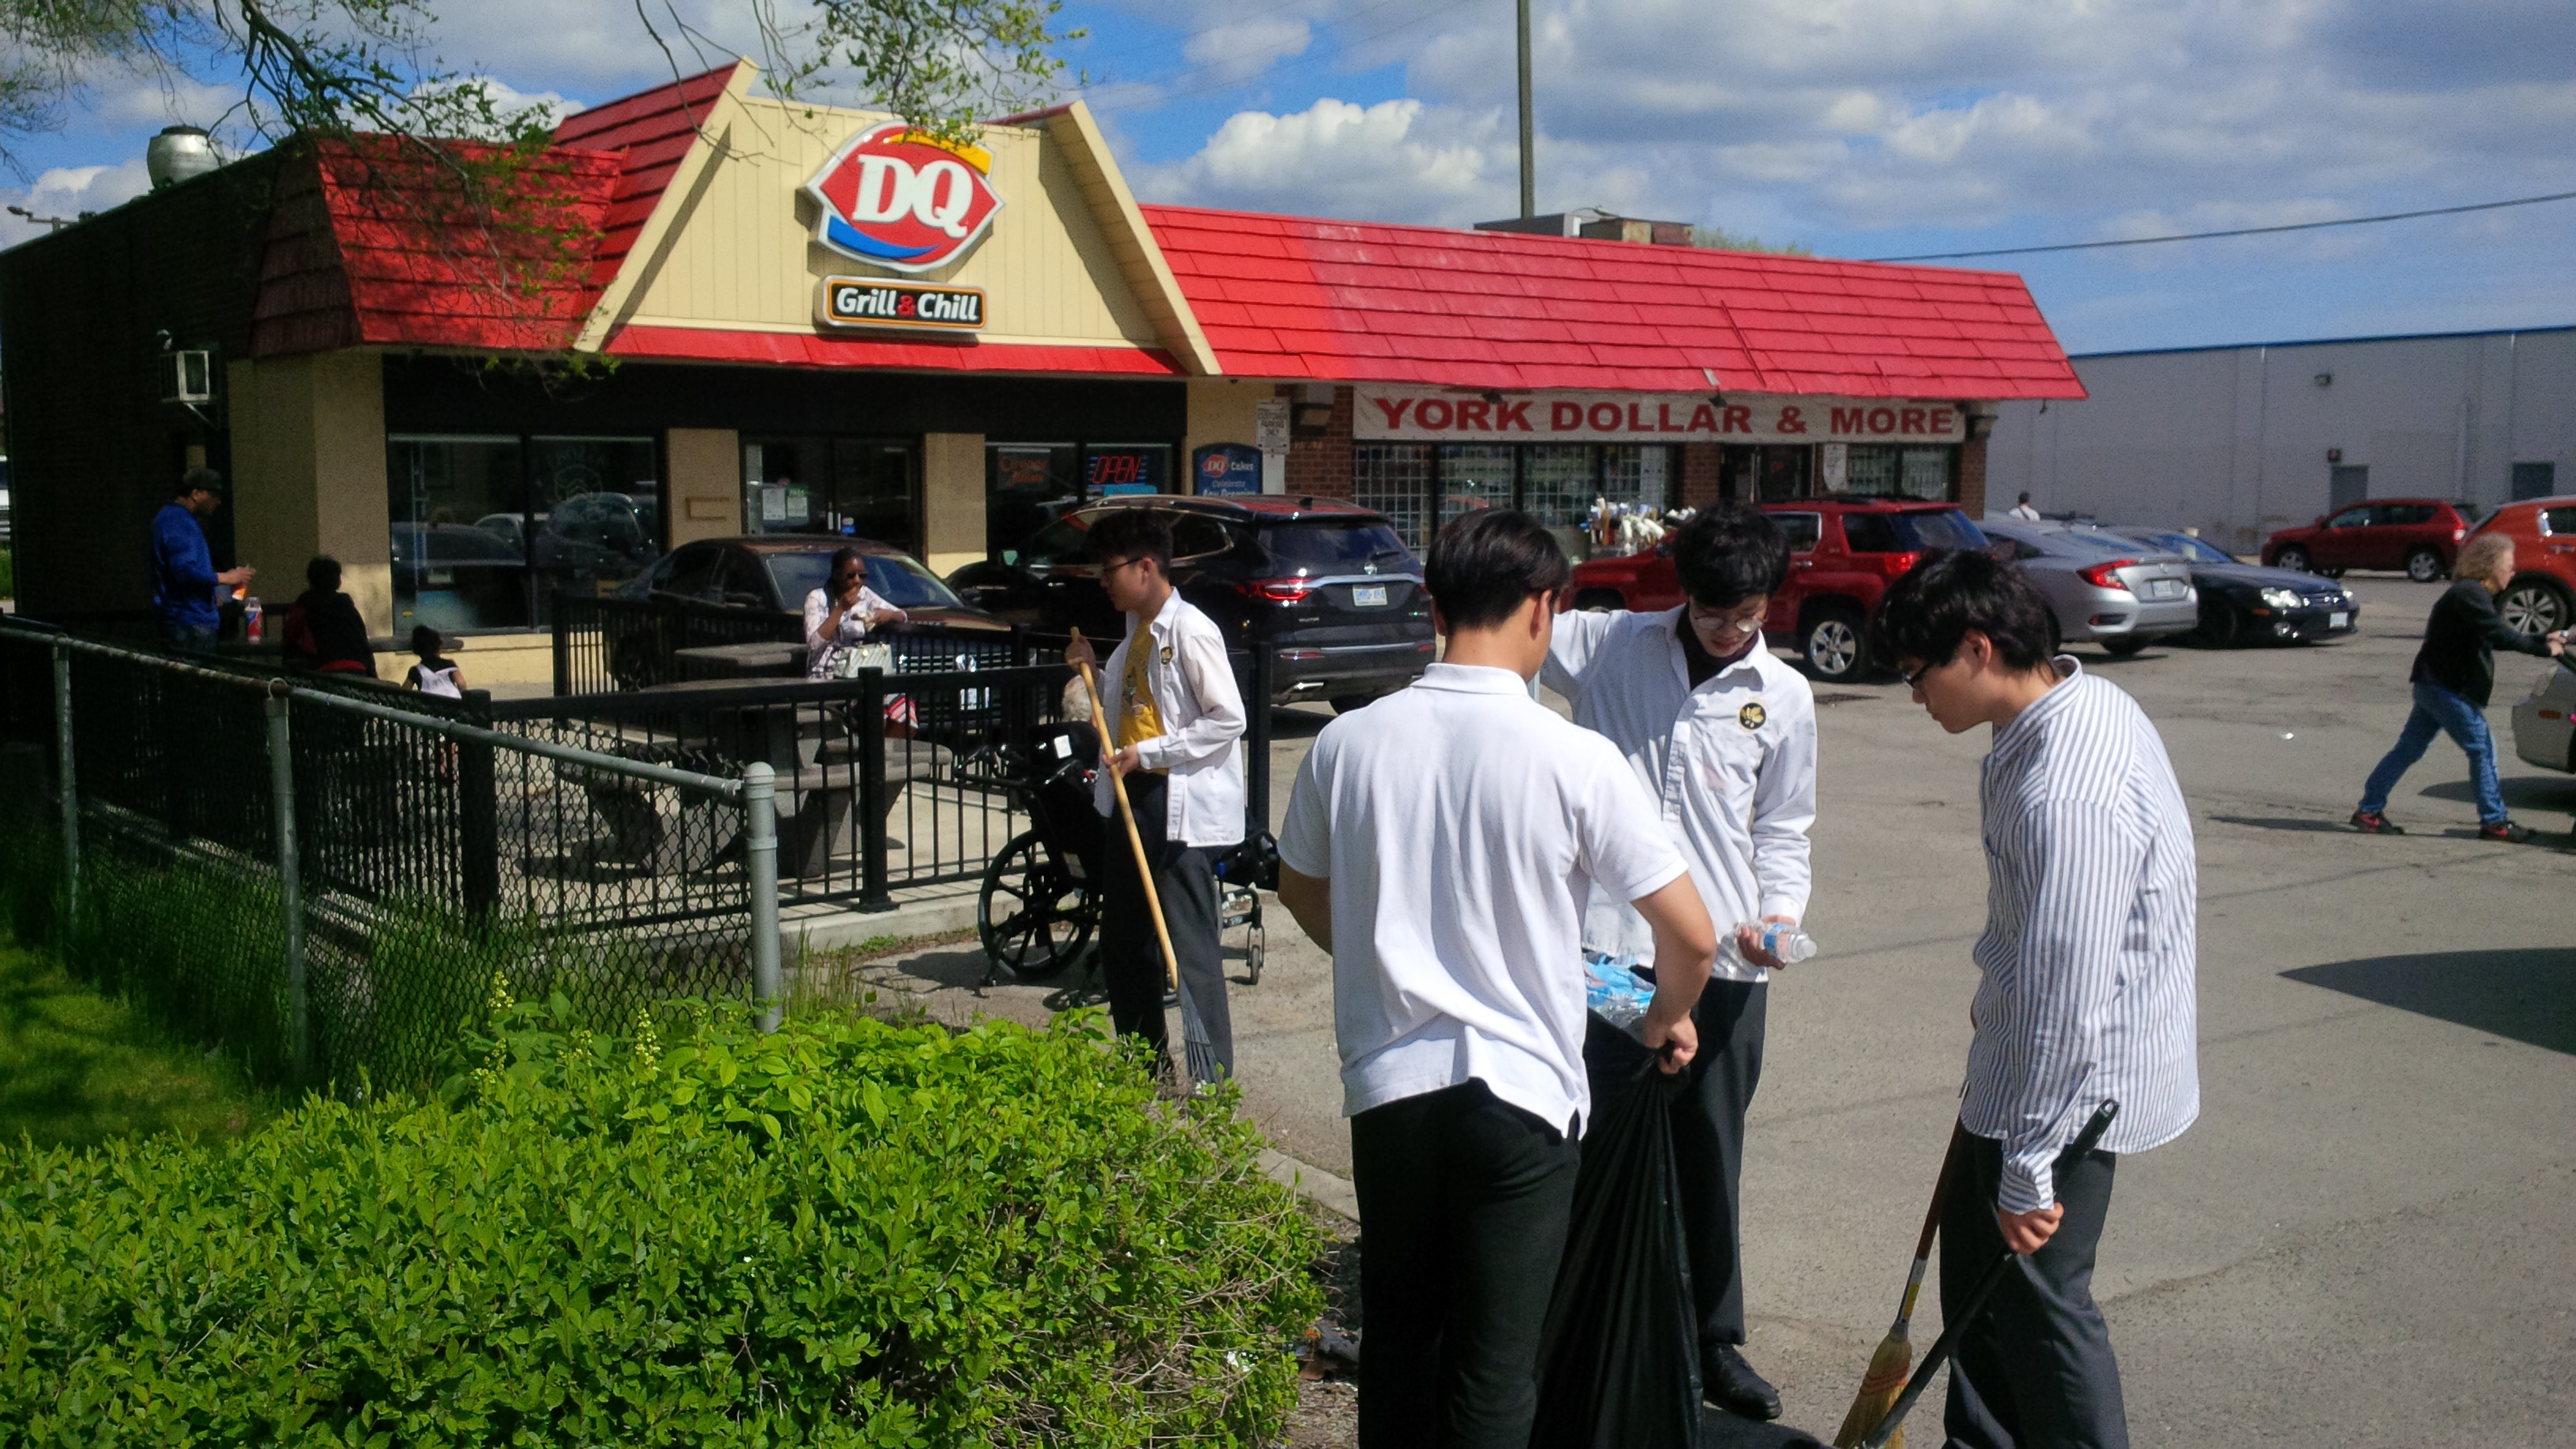 Volunteers cleaning up dairy queen